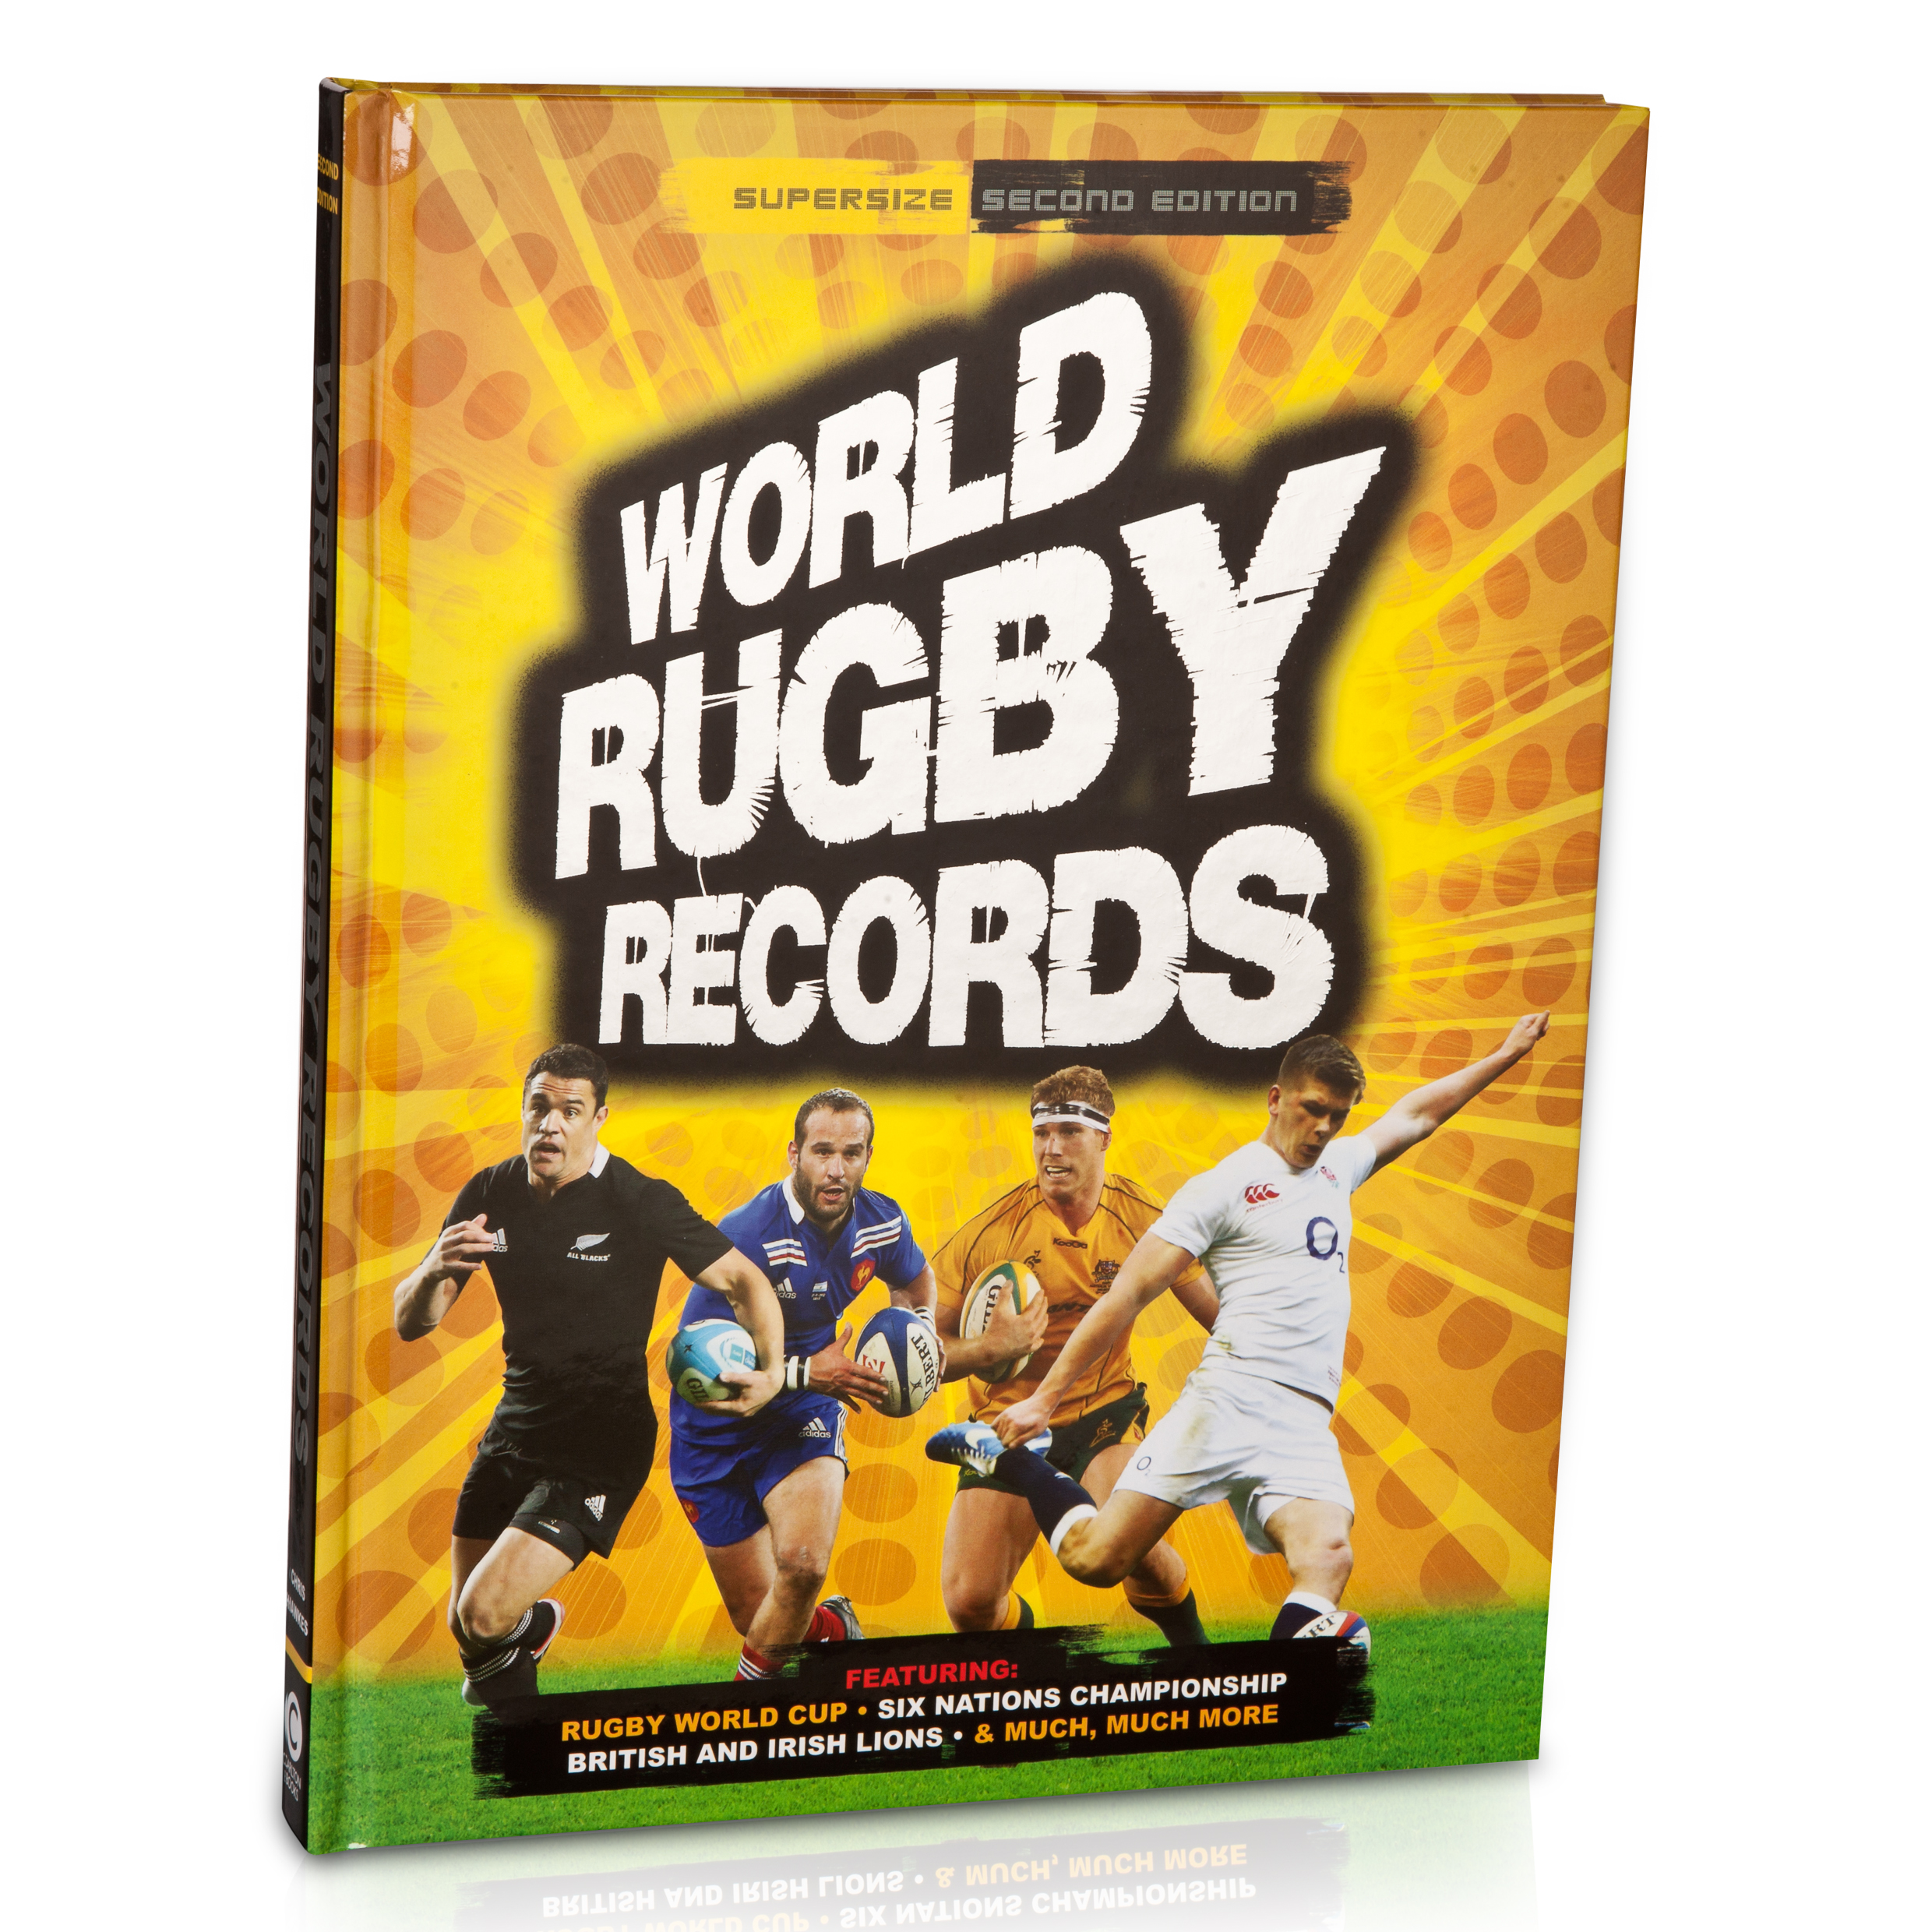 RFU World Rugby Records Second Edition